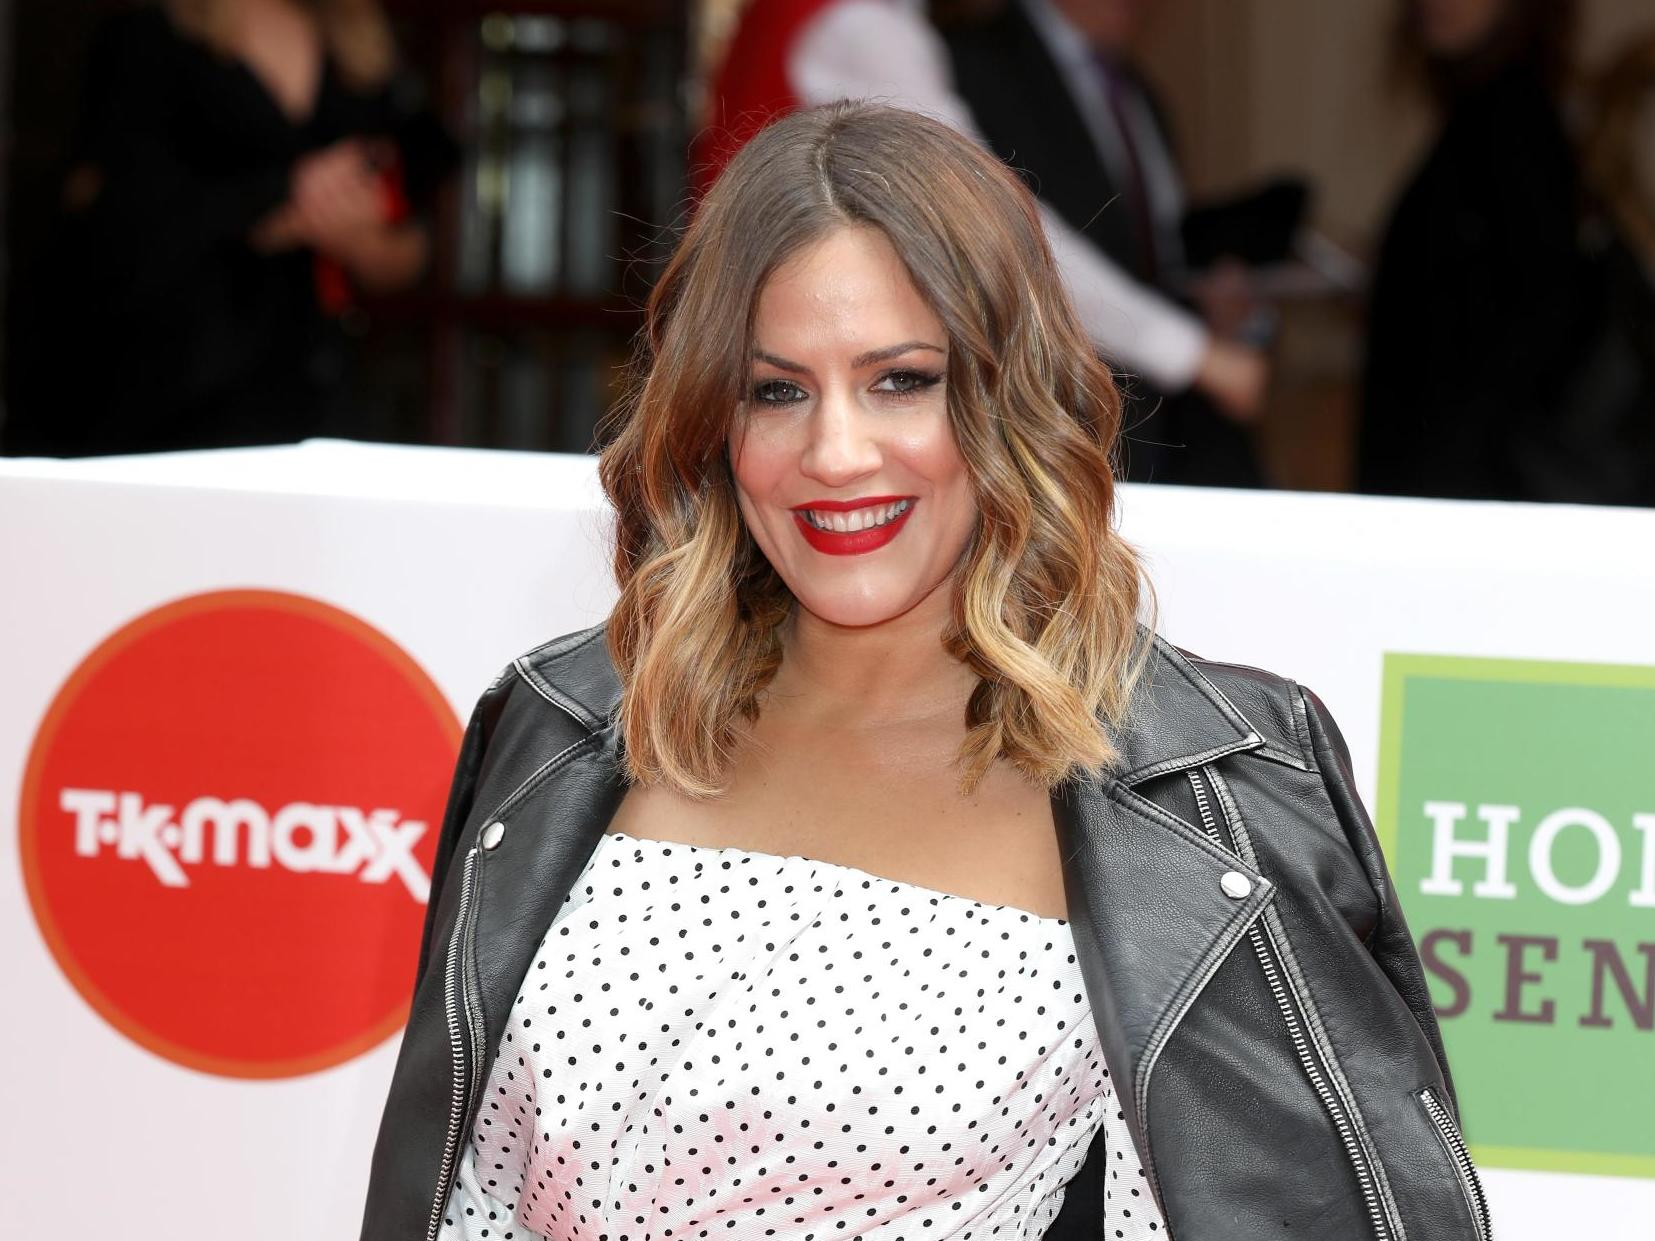 More than 500,000 people sign petition to 'protect celebrities' in wake of Caroline Flack's death